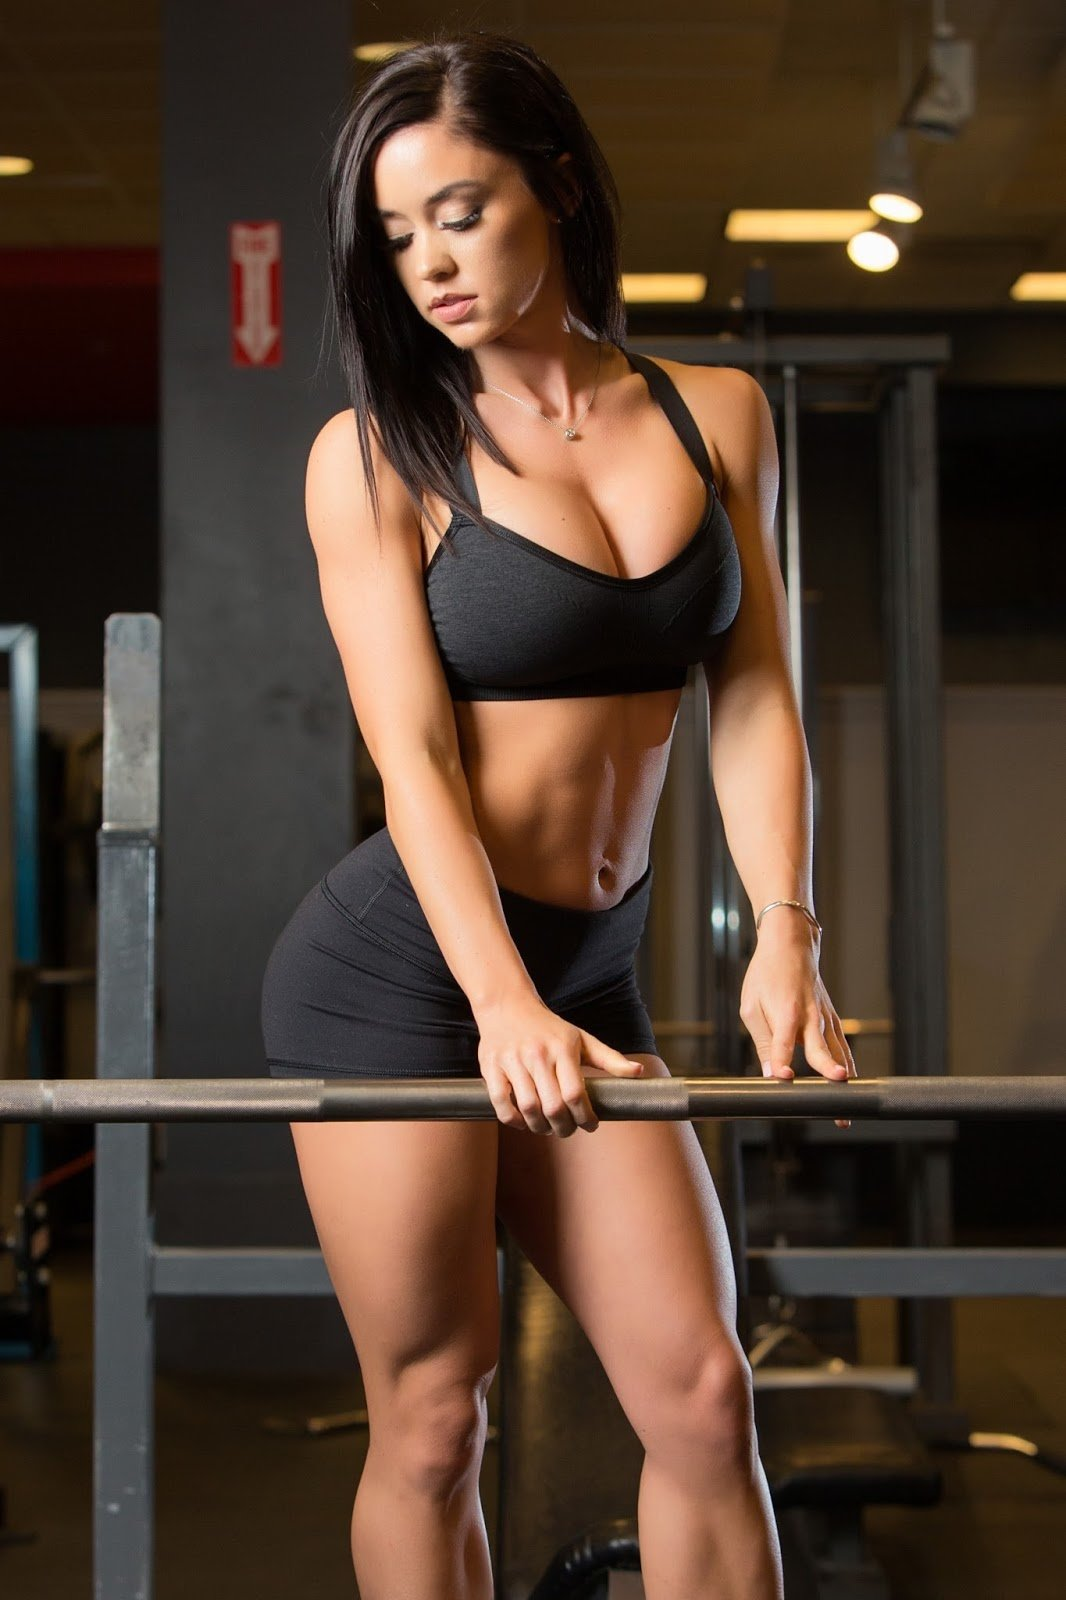 Nude Girls In The Gym